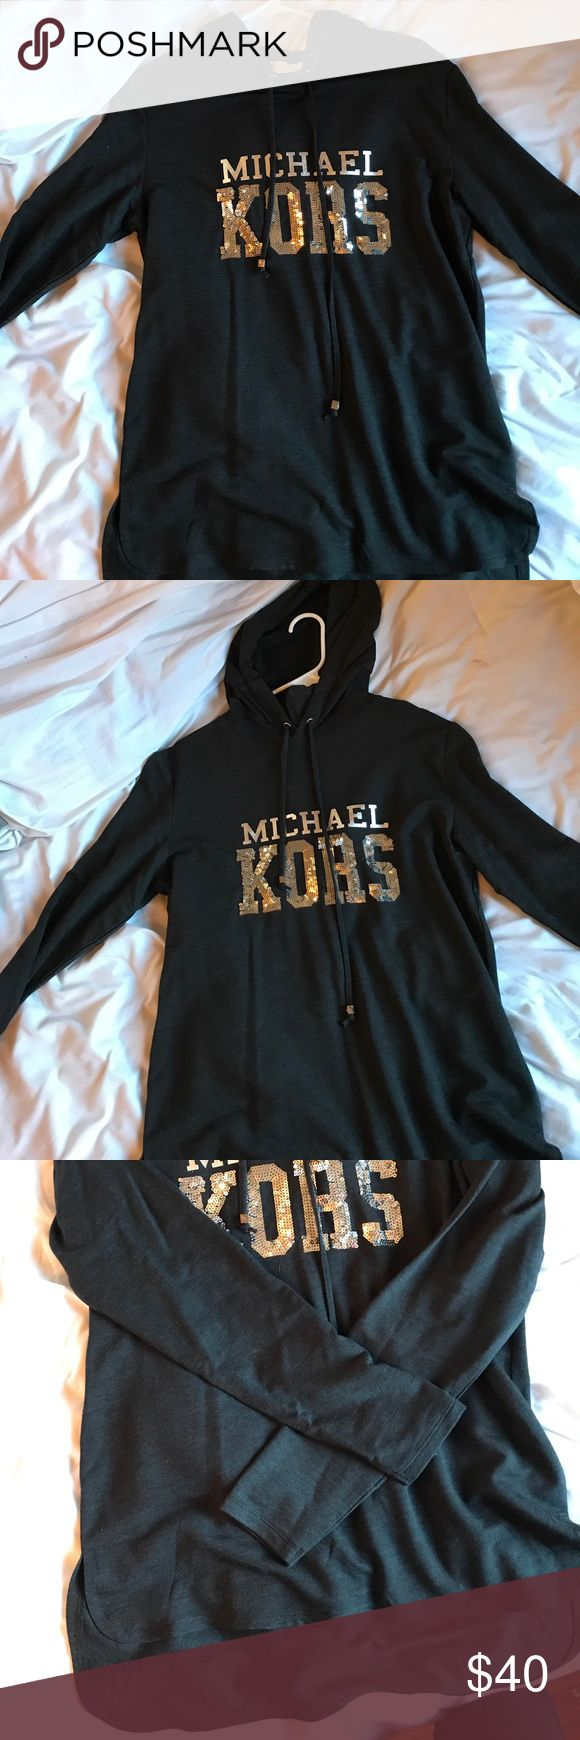 Michael Kors shirt hoodie Michael Kors shirt hoodie new I only wore it once for a couple hours, no pilling, very soft. Bought at Nordstrom rack. Says Michael Kors in sequins Michael Kors Tops Tees - Long Sleeve